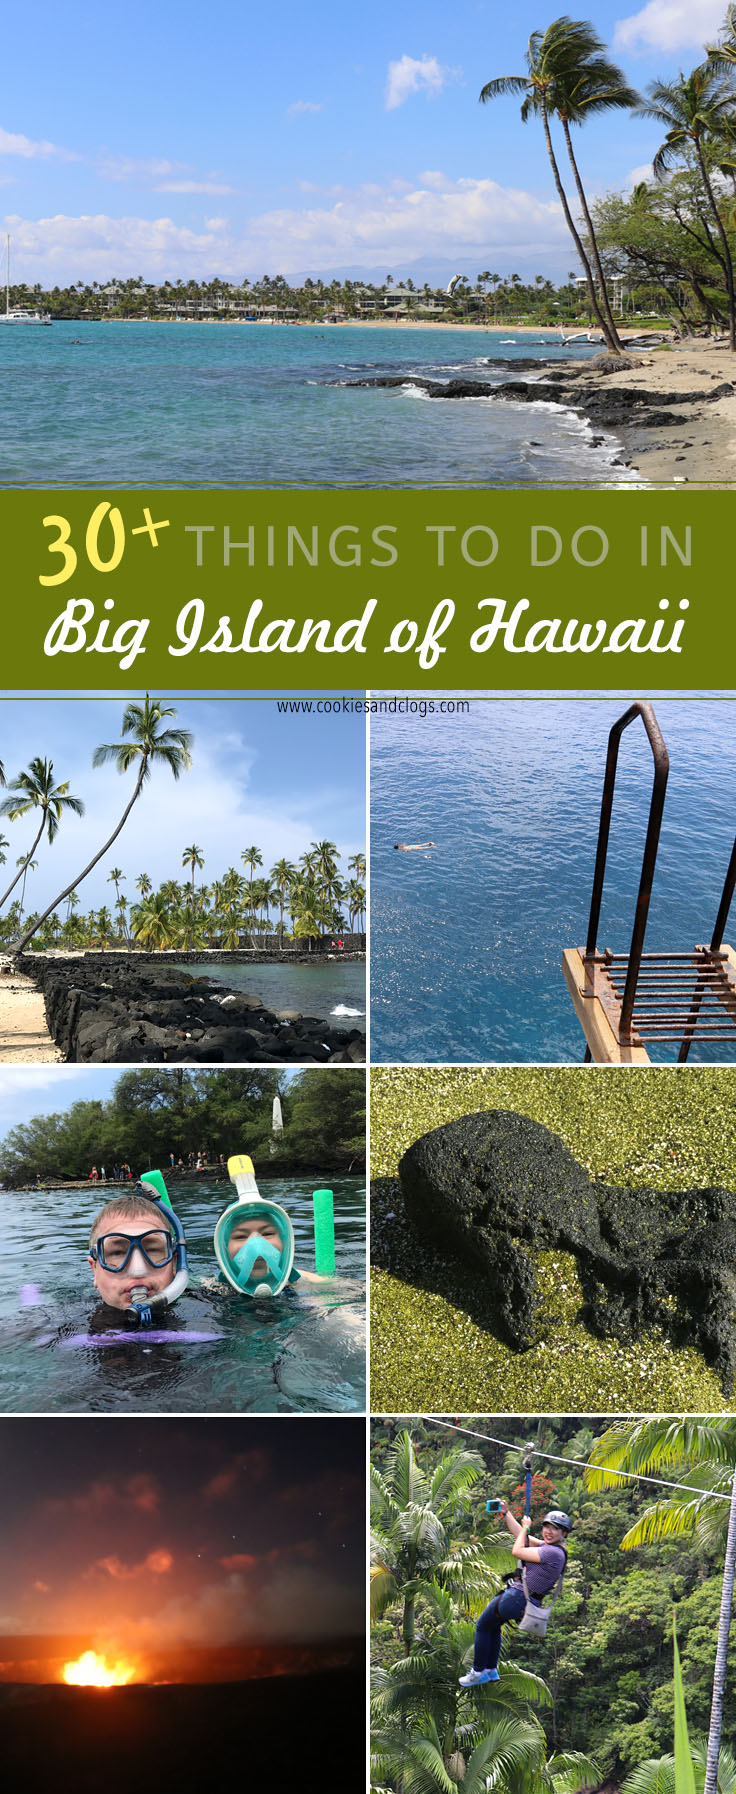 Cookies & Clogs | 30+ Family friendly things to do on the Big Island of Hawaii with kids. Hawaii family travel ideas and activities.